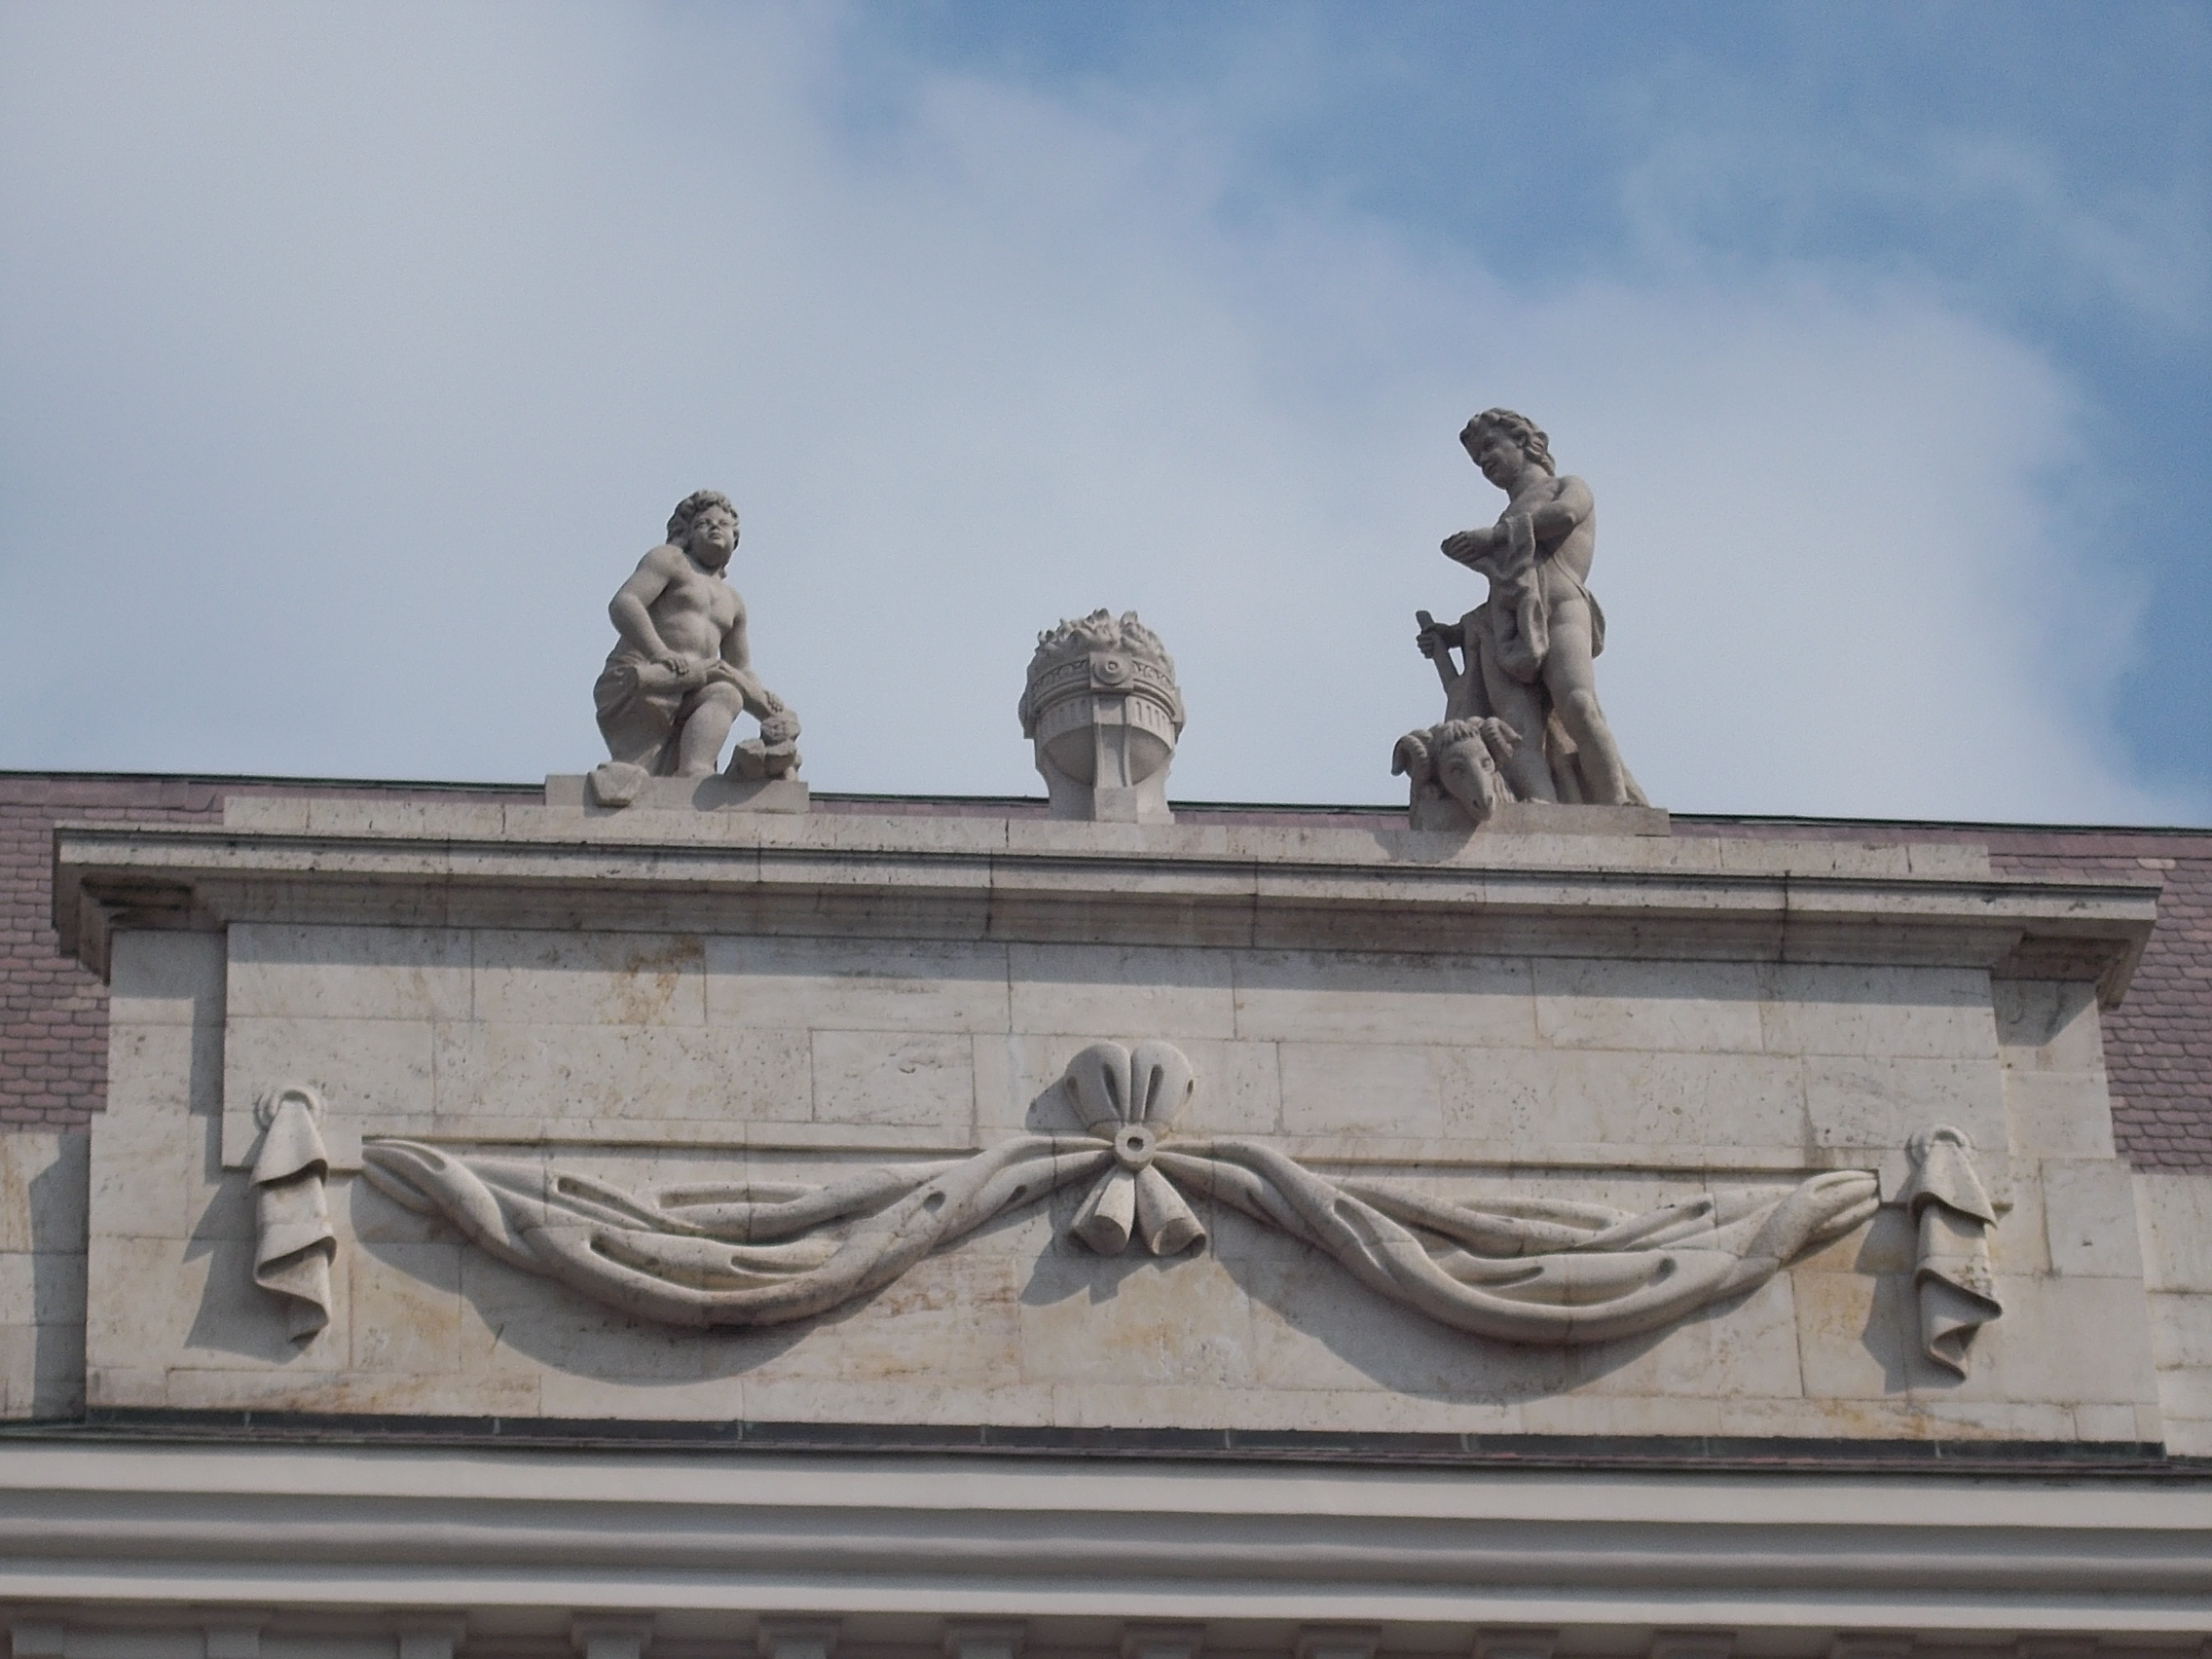 file:roof decoration of the hilton budapest hotel. sculptures